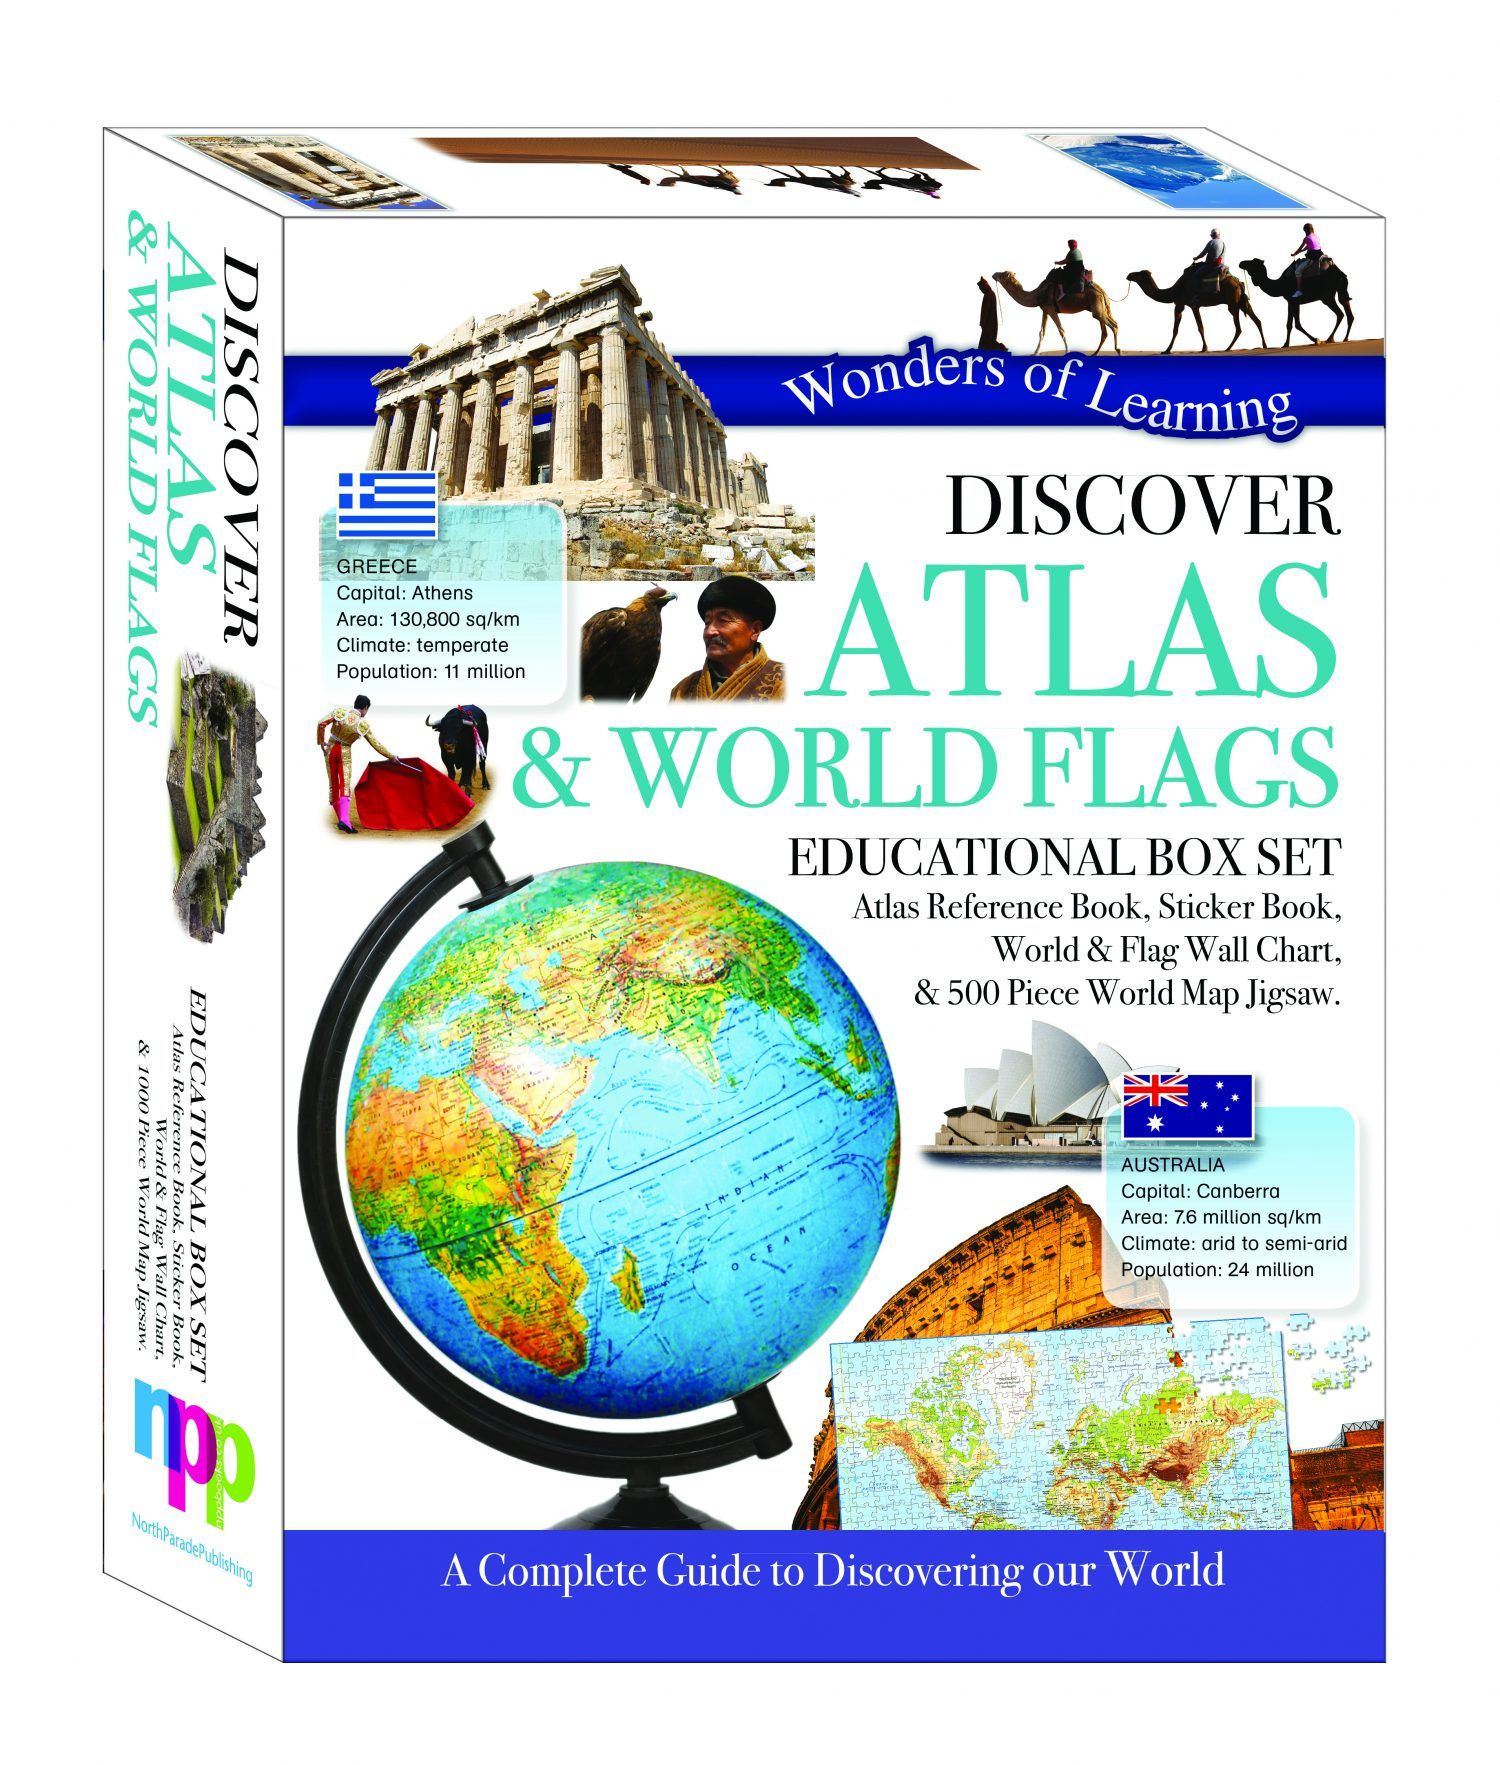 Discover Atlas and World Flags by North Parade